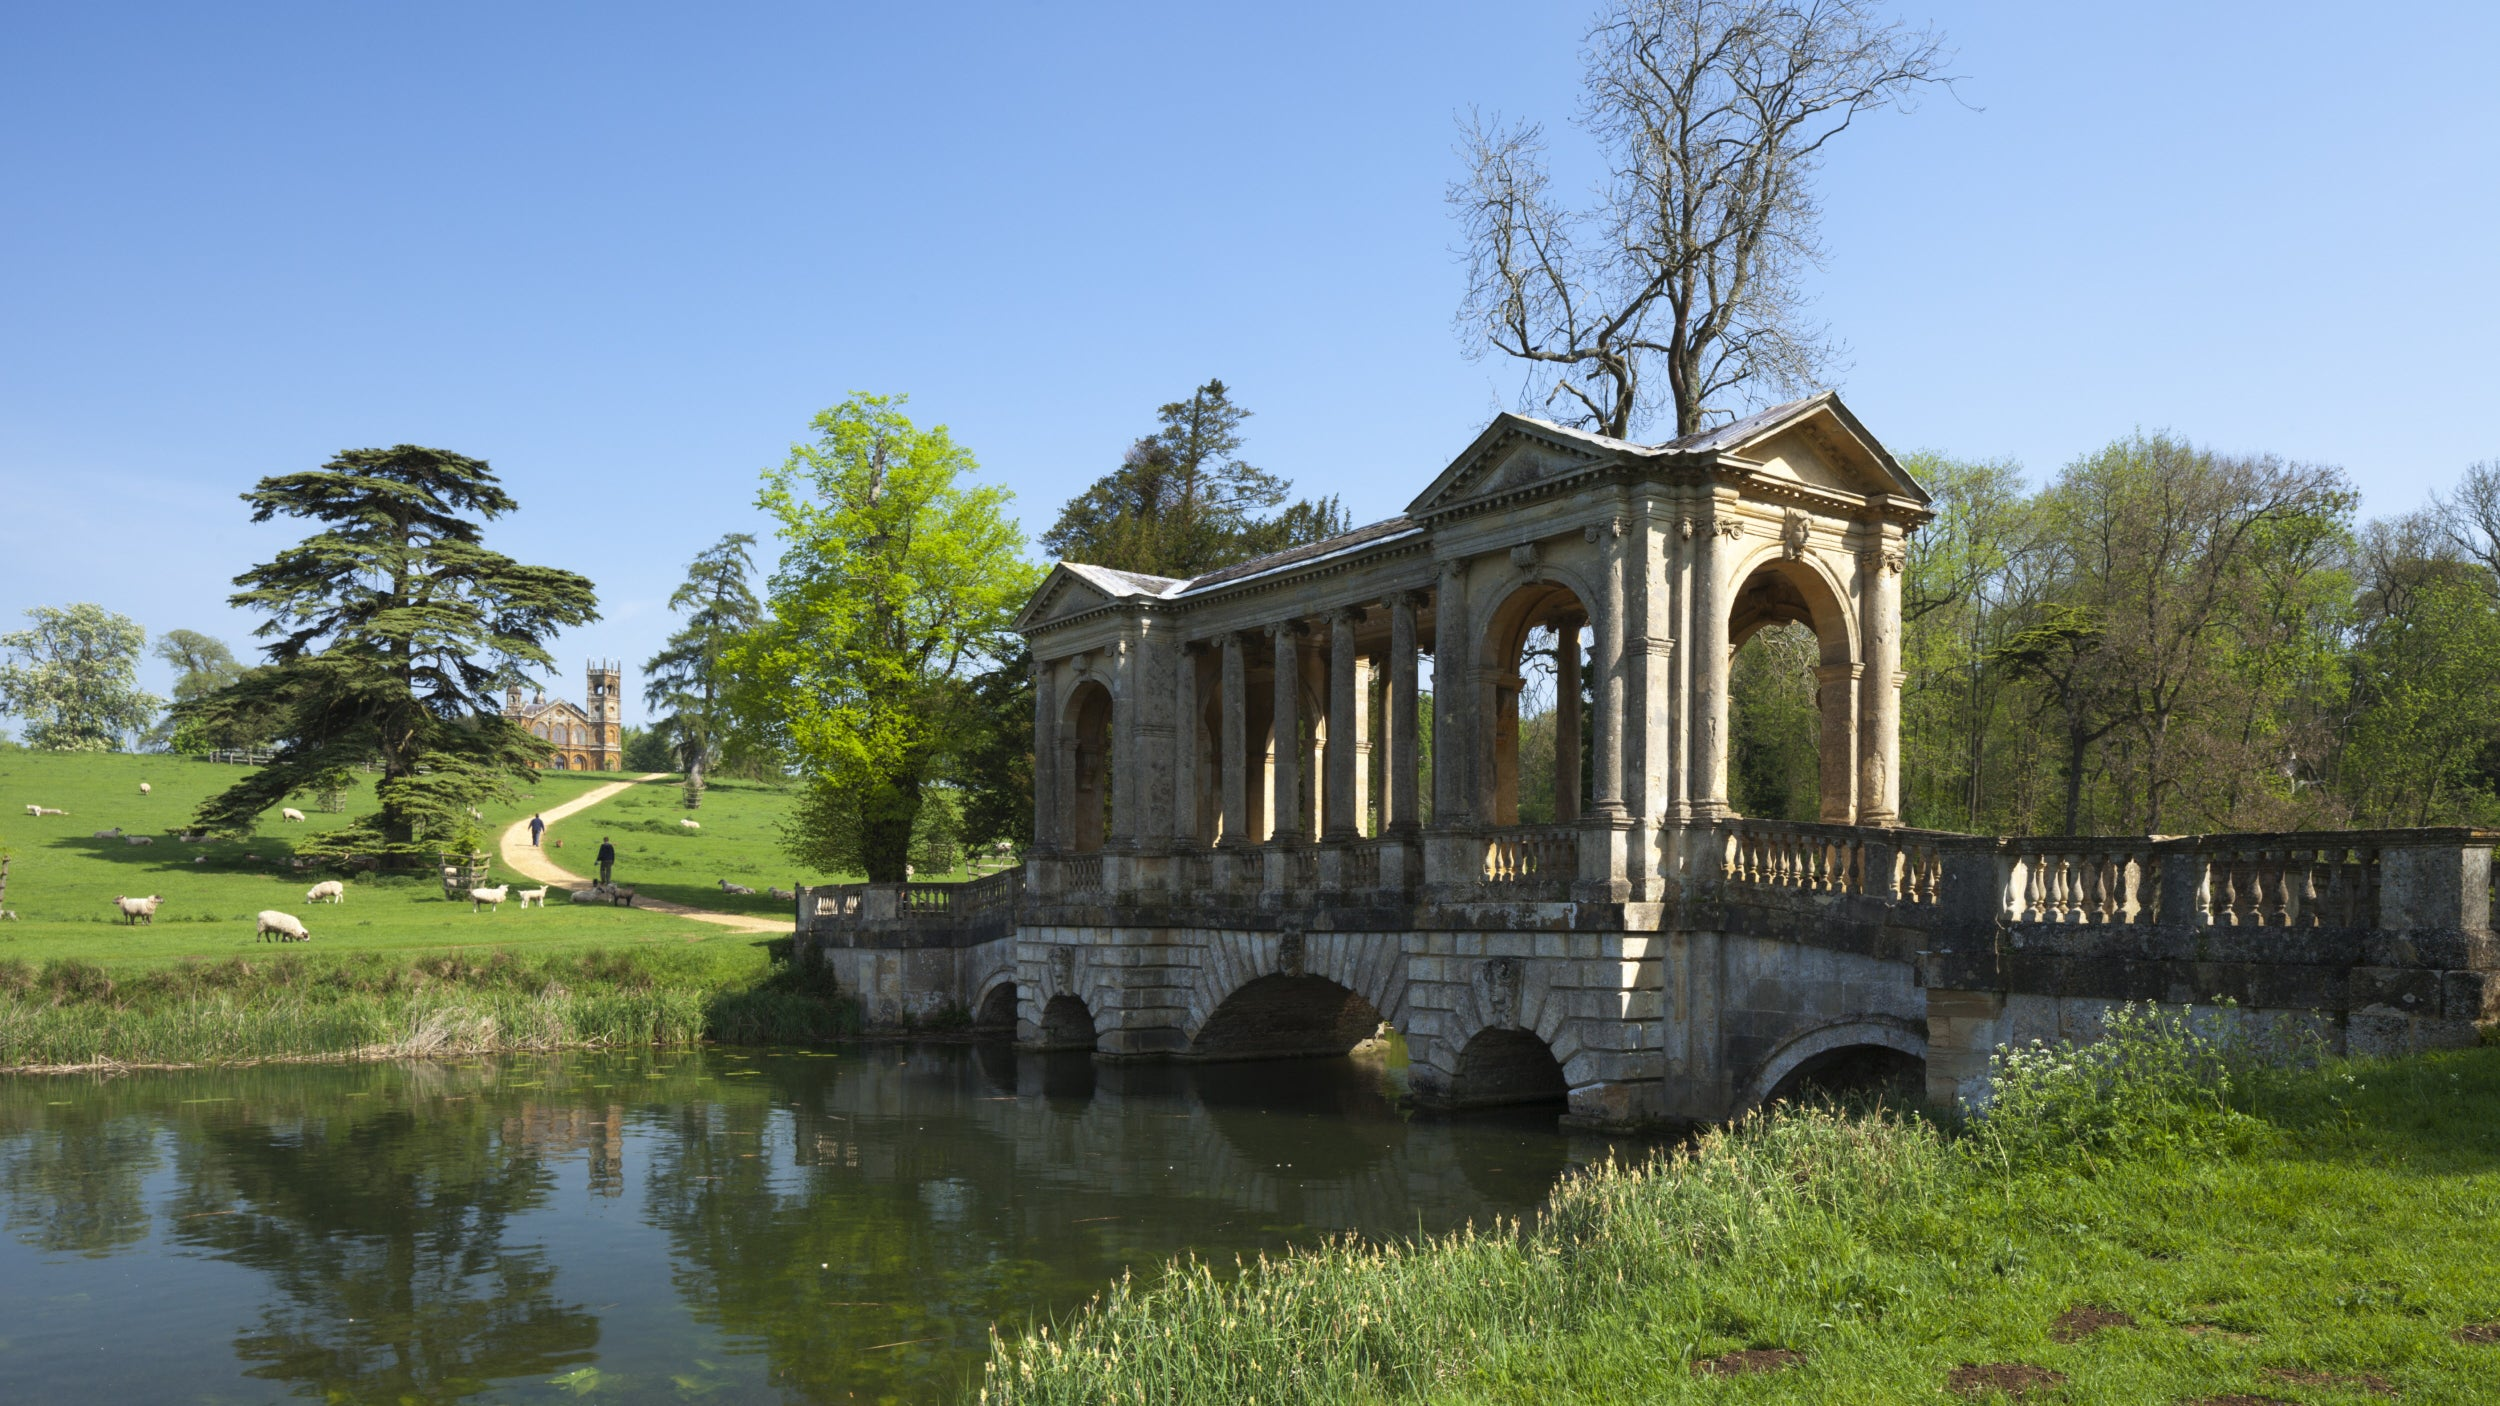 A fine roofed stone bridge over the lake in spring